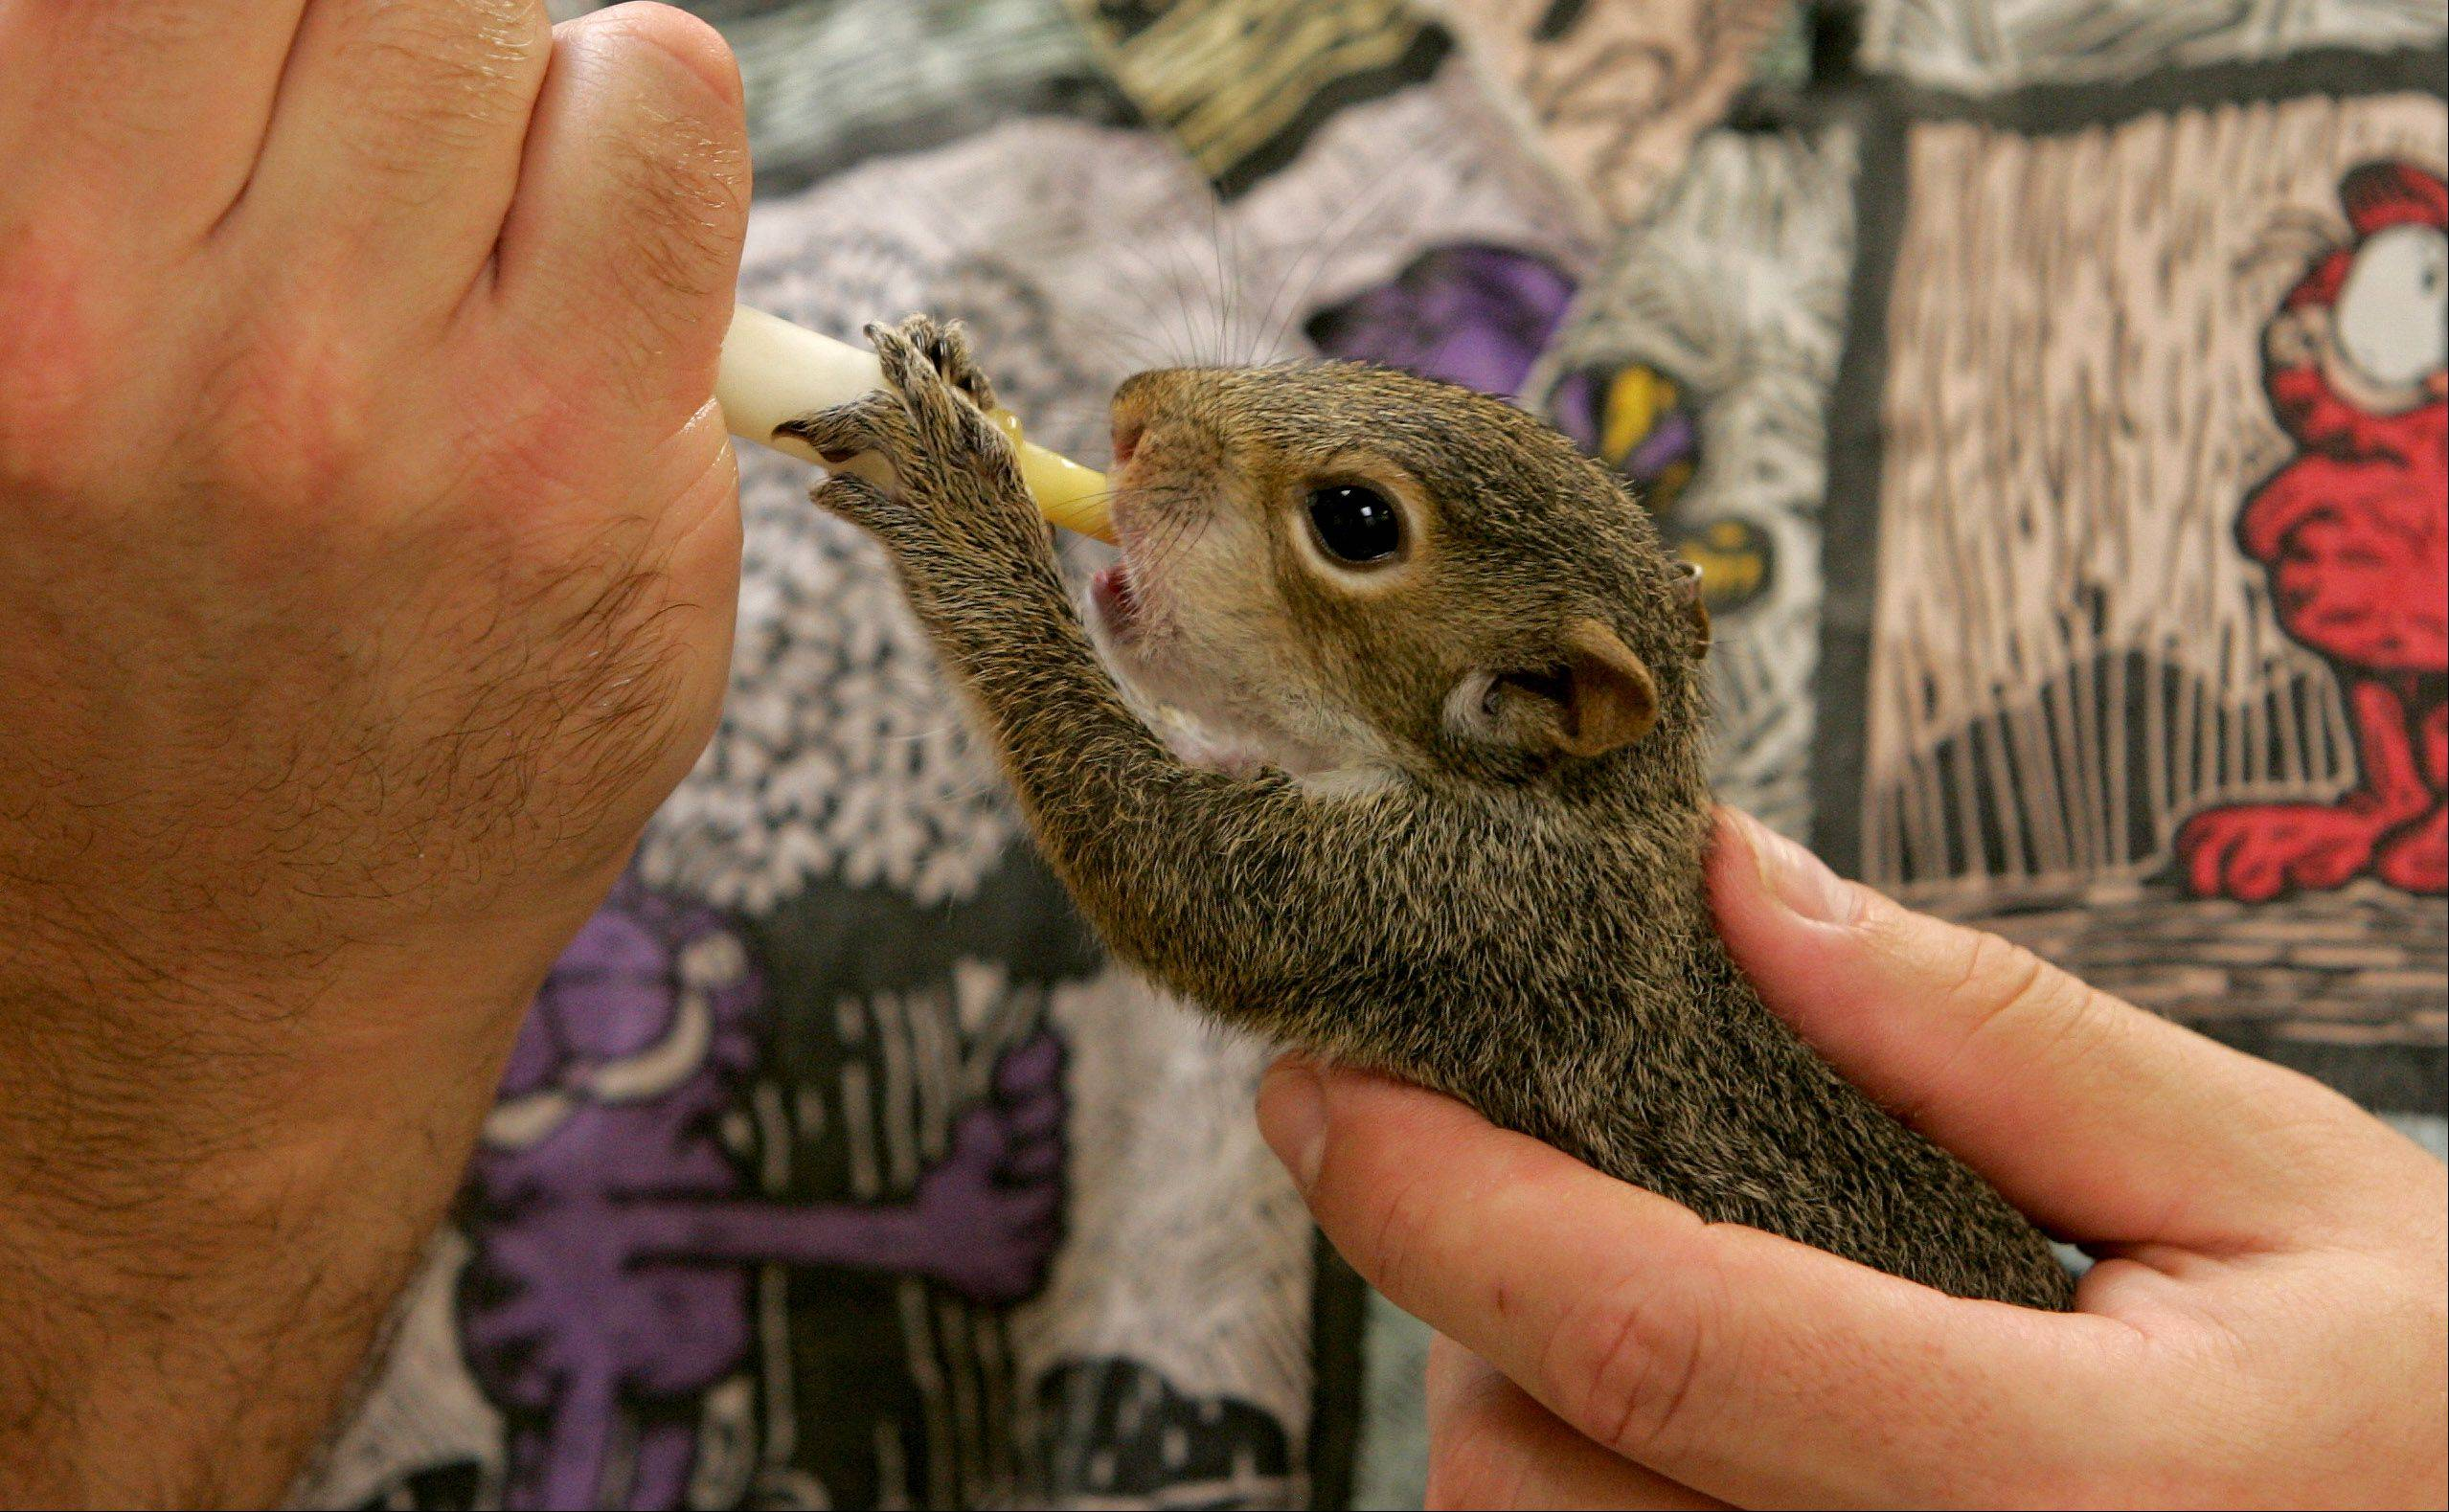 A baby squirrel is hand-fed a special formula for rodents during its care at the Willowbrook Wildlife Center in Glen Ellyn.